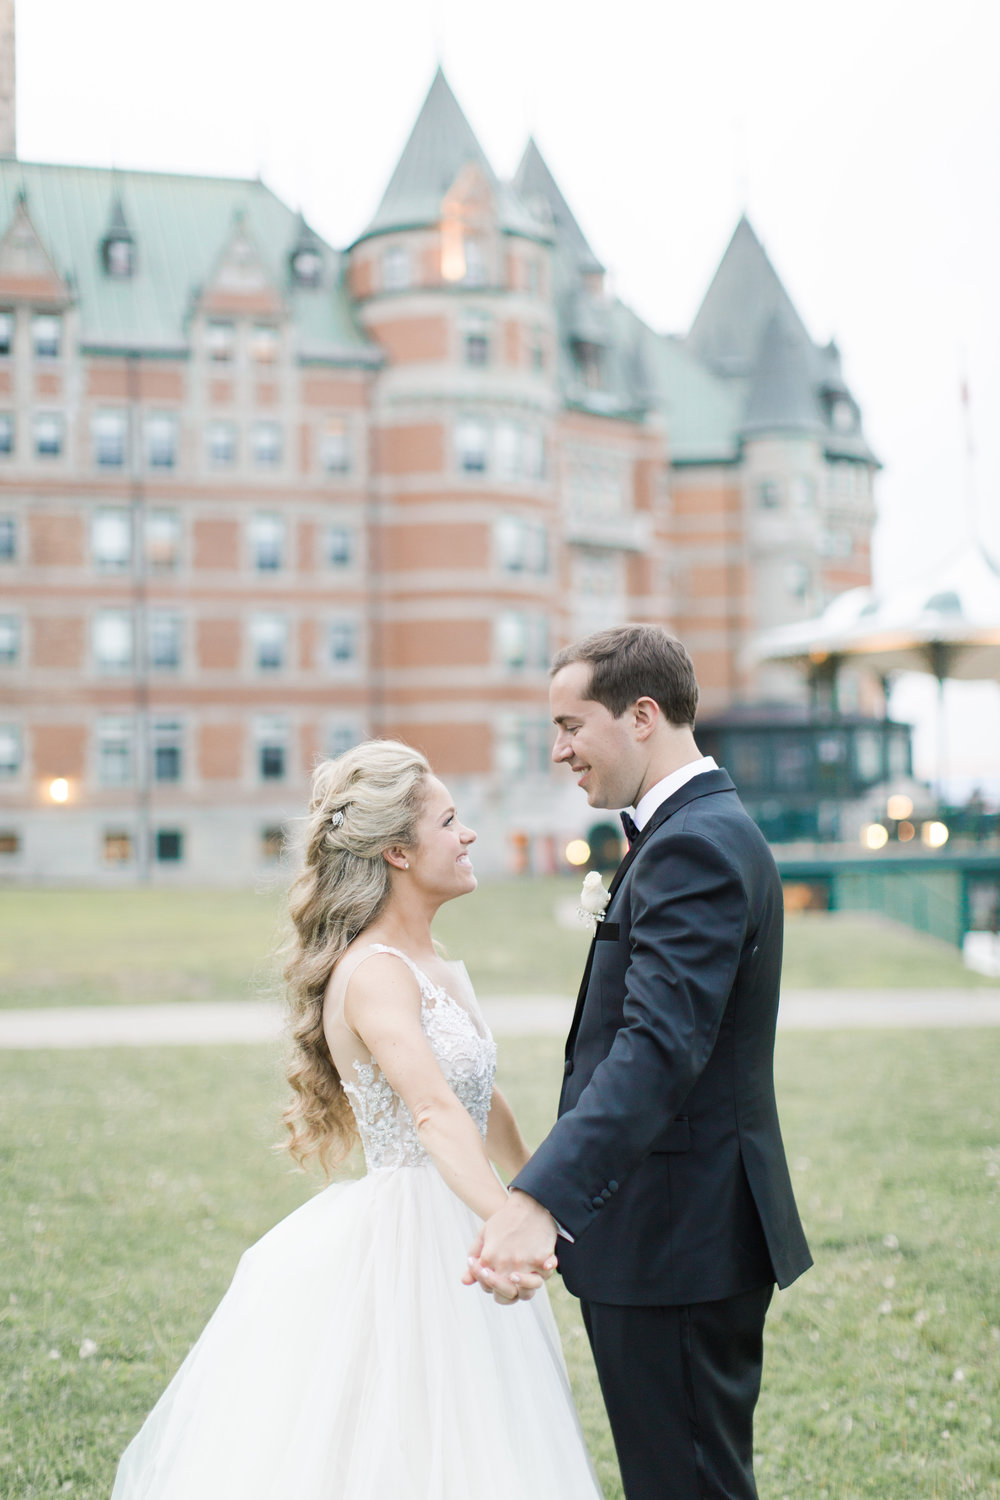 toronto-ontario-wedding-photographer-heidi-elliott-previews-28.jpg